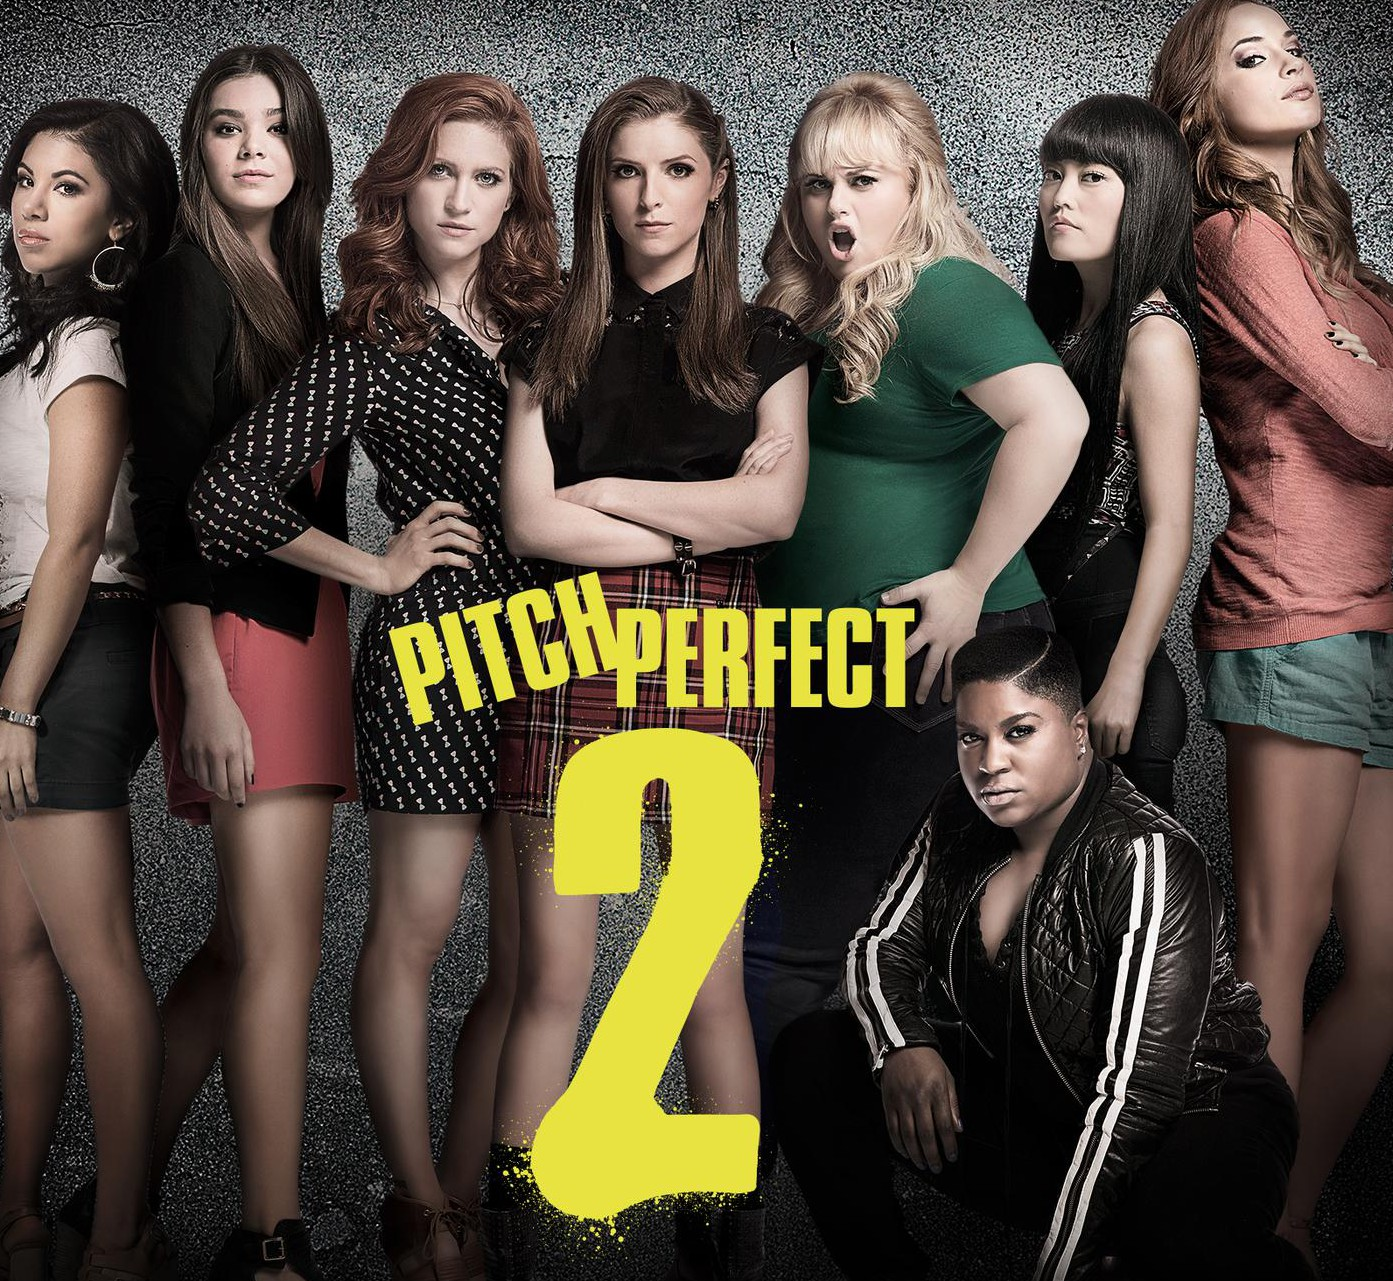 Pitch Perfect 2 earned more in one weekend than Pitch Perfect has made since its release